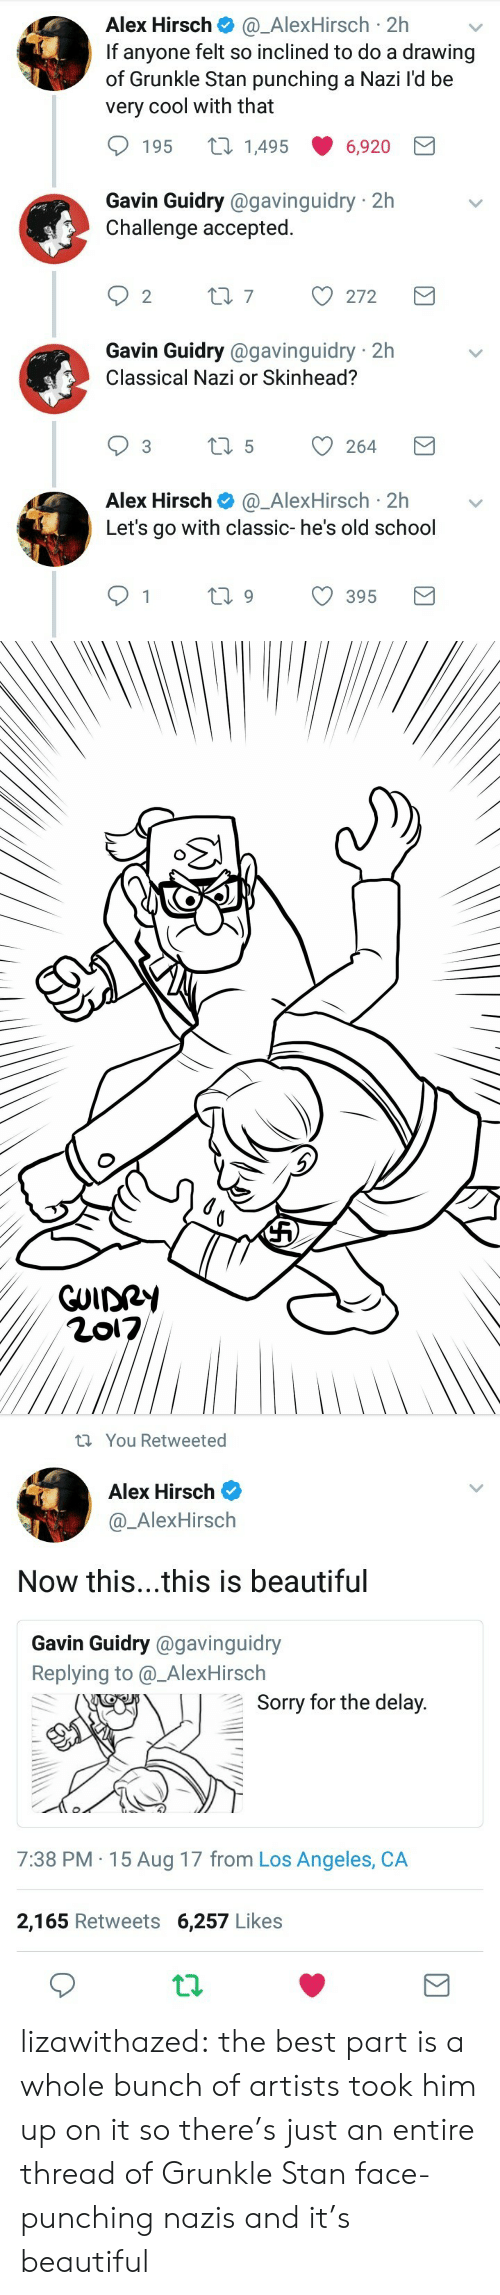 Beautiful, School, and Sorry: Alex Hirsch@_AlexHirsch 2h  If anyone felt so inclined to do a drawing  of Grunkle Stan punching a Nazi l'd be  very cool with that  195 t 14956,920  Gavin Guidry @gavinguidry 2h  Challenge accepted.  Gavin Guidry @gavinguidry 2h  Classical Nazi or Skinhead?  Alex Hirsch@_AlexHirsch 2hv  Let's go with classic- he's old school  1  ti9 395   You Retweeted  Alex Hirsch  @_AlexHirsch  Now this...this is beautiful  Gavin Guidry @gavinguidry  Replying to @_AlexHirsch  Sorry for the delav  7:38 PM 15 Aug 17 from Los Angeles, CA  2,165 Retweets 6,257 Likes lizawithazed: the best part is a whole bunch of artists took him up on it so there's just an entire thread of Grunkle Stan face-punching nazis and it's beautiful